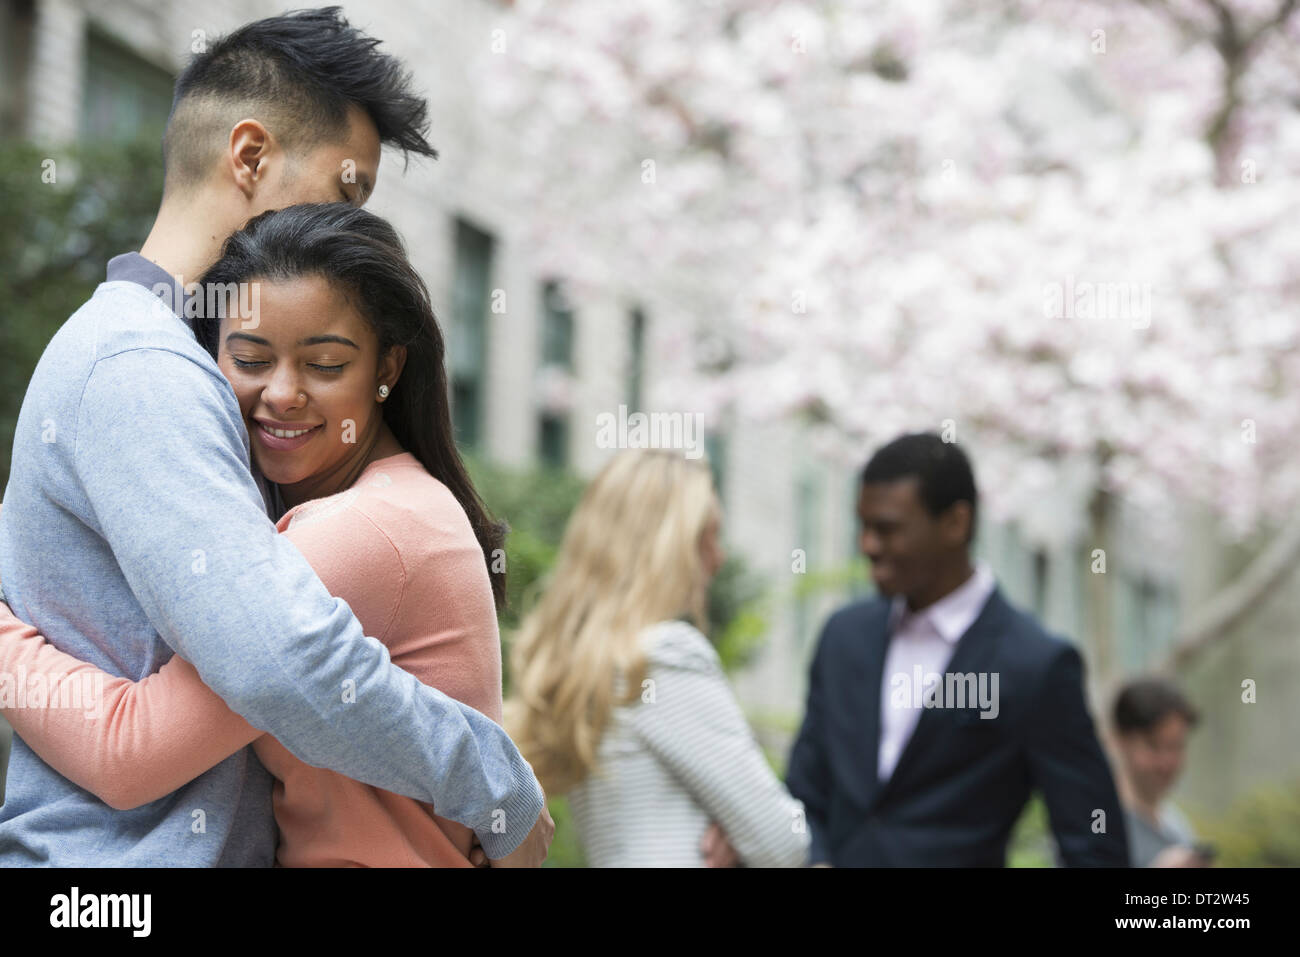 View over cityYoung people outdoors in a city park A couple embracing and two people talking under the trees - Stock Image